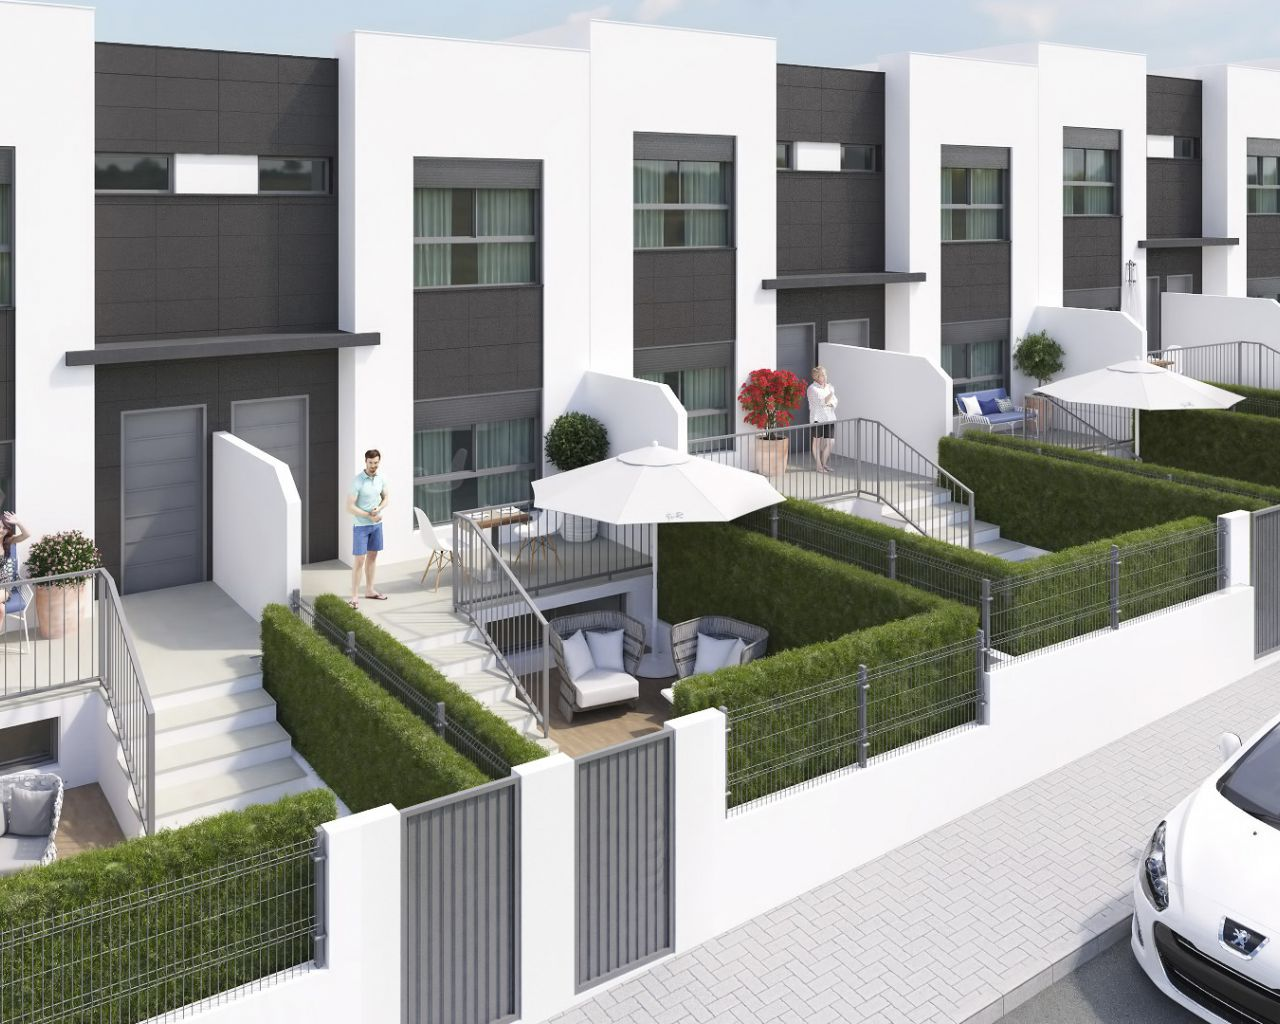 New Build - Duplex/Townhouses - Molina de Segura